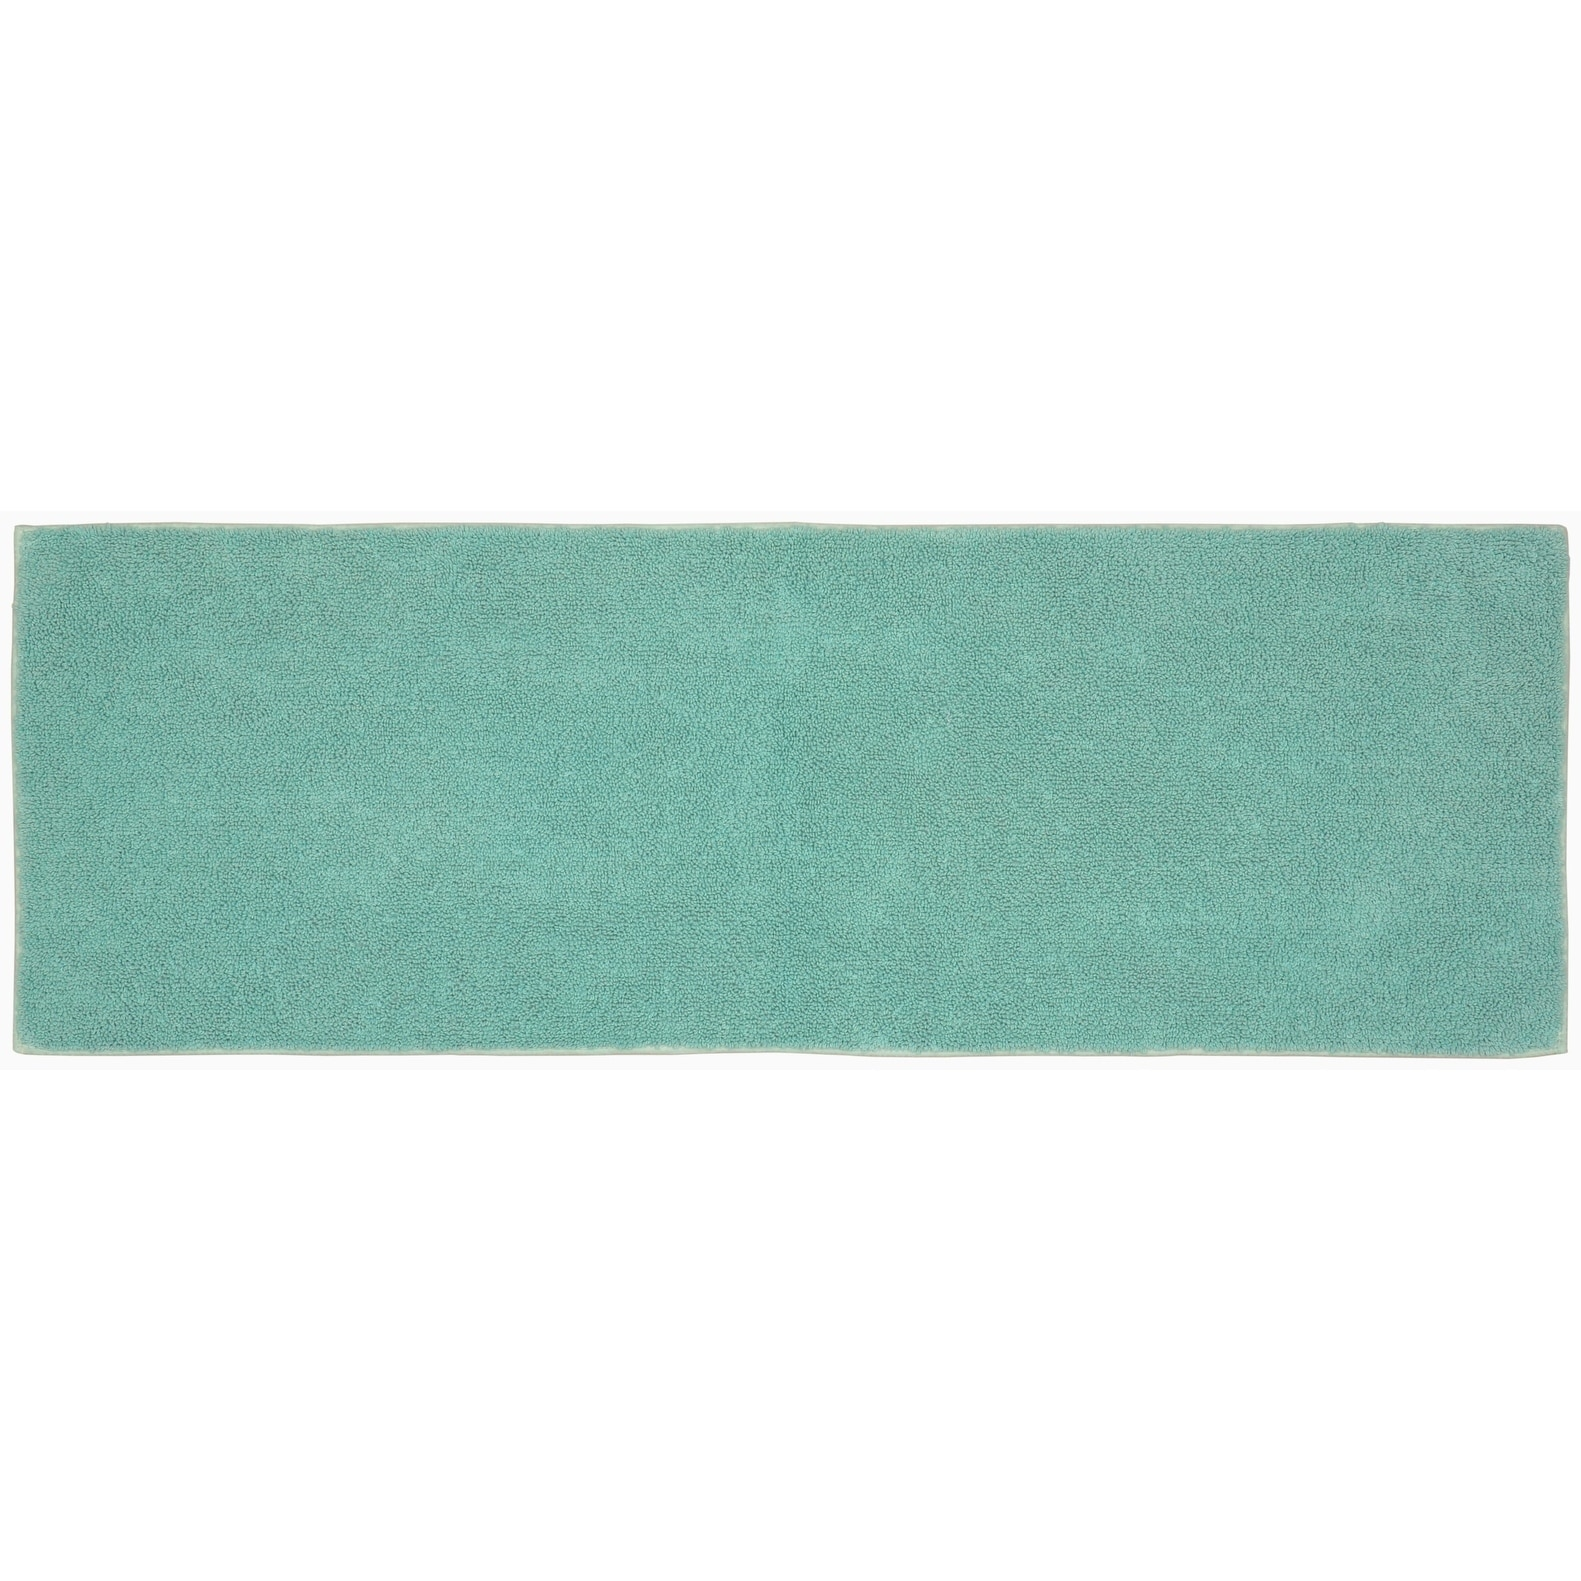 Queen Cotton Sea Foam Washable Bath Rug Runner